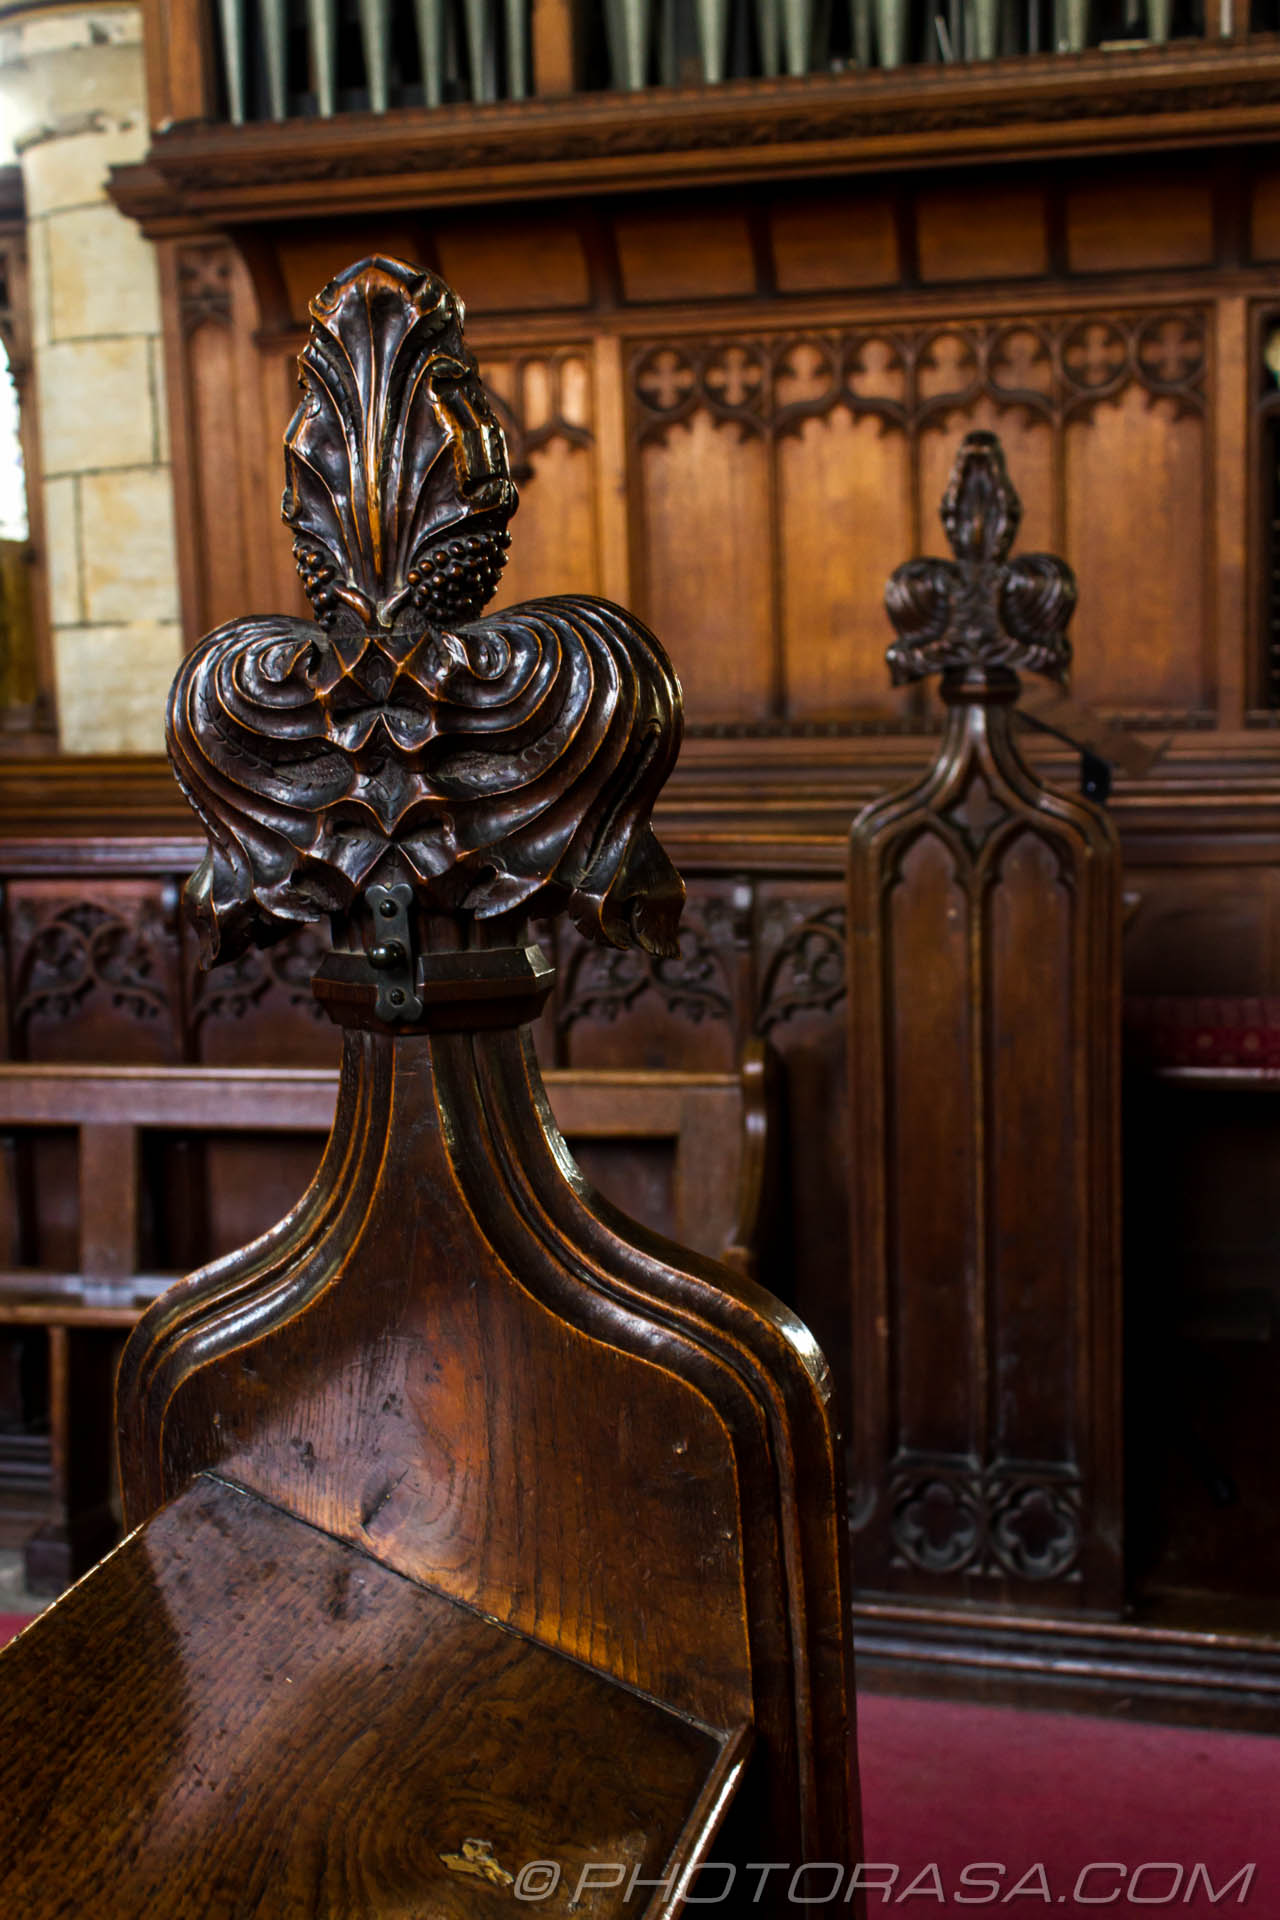 http://photorasa.com/saints-church-staplehurst-kent/pew-flower-carvings/